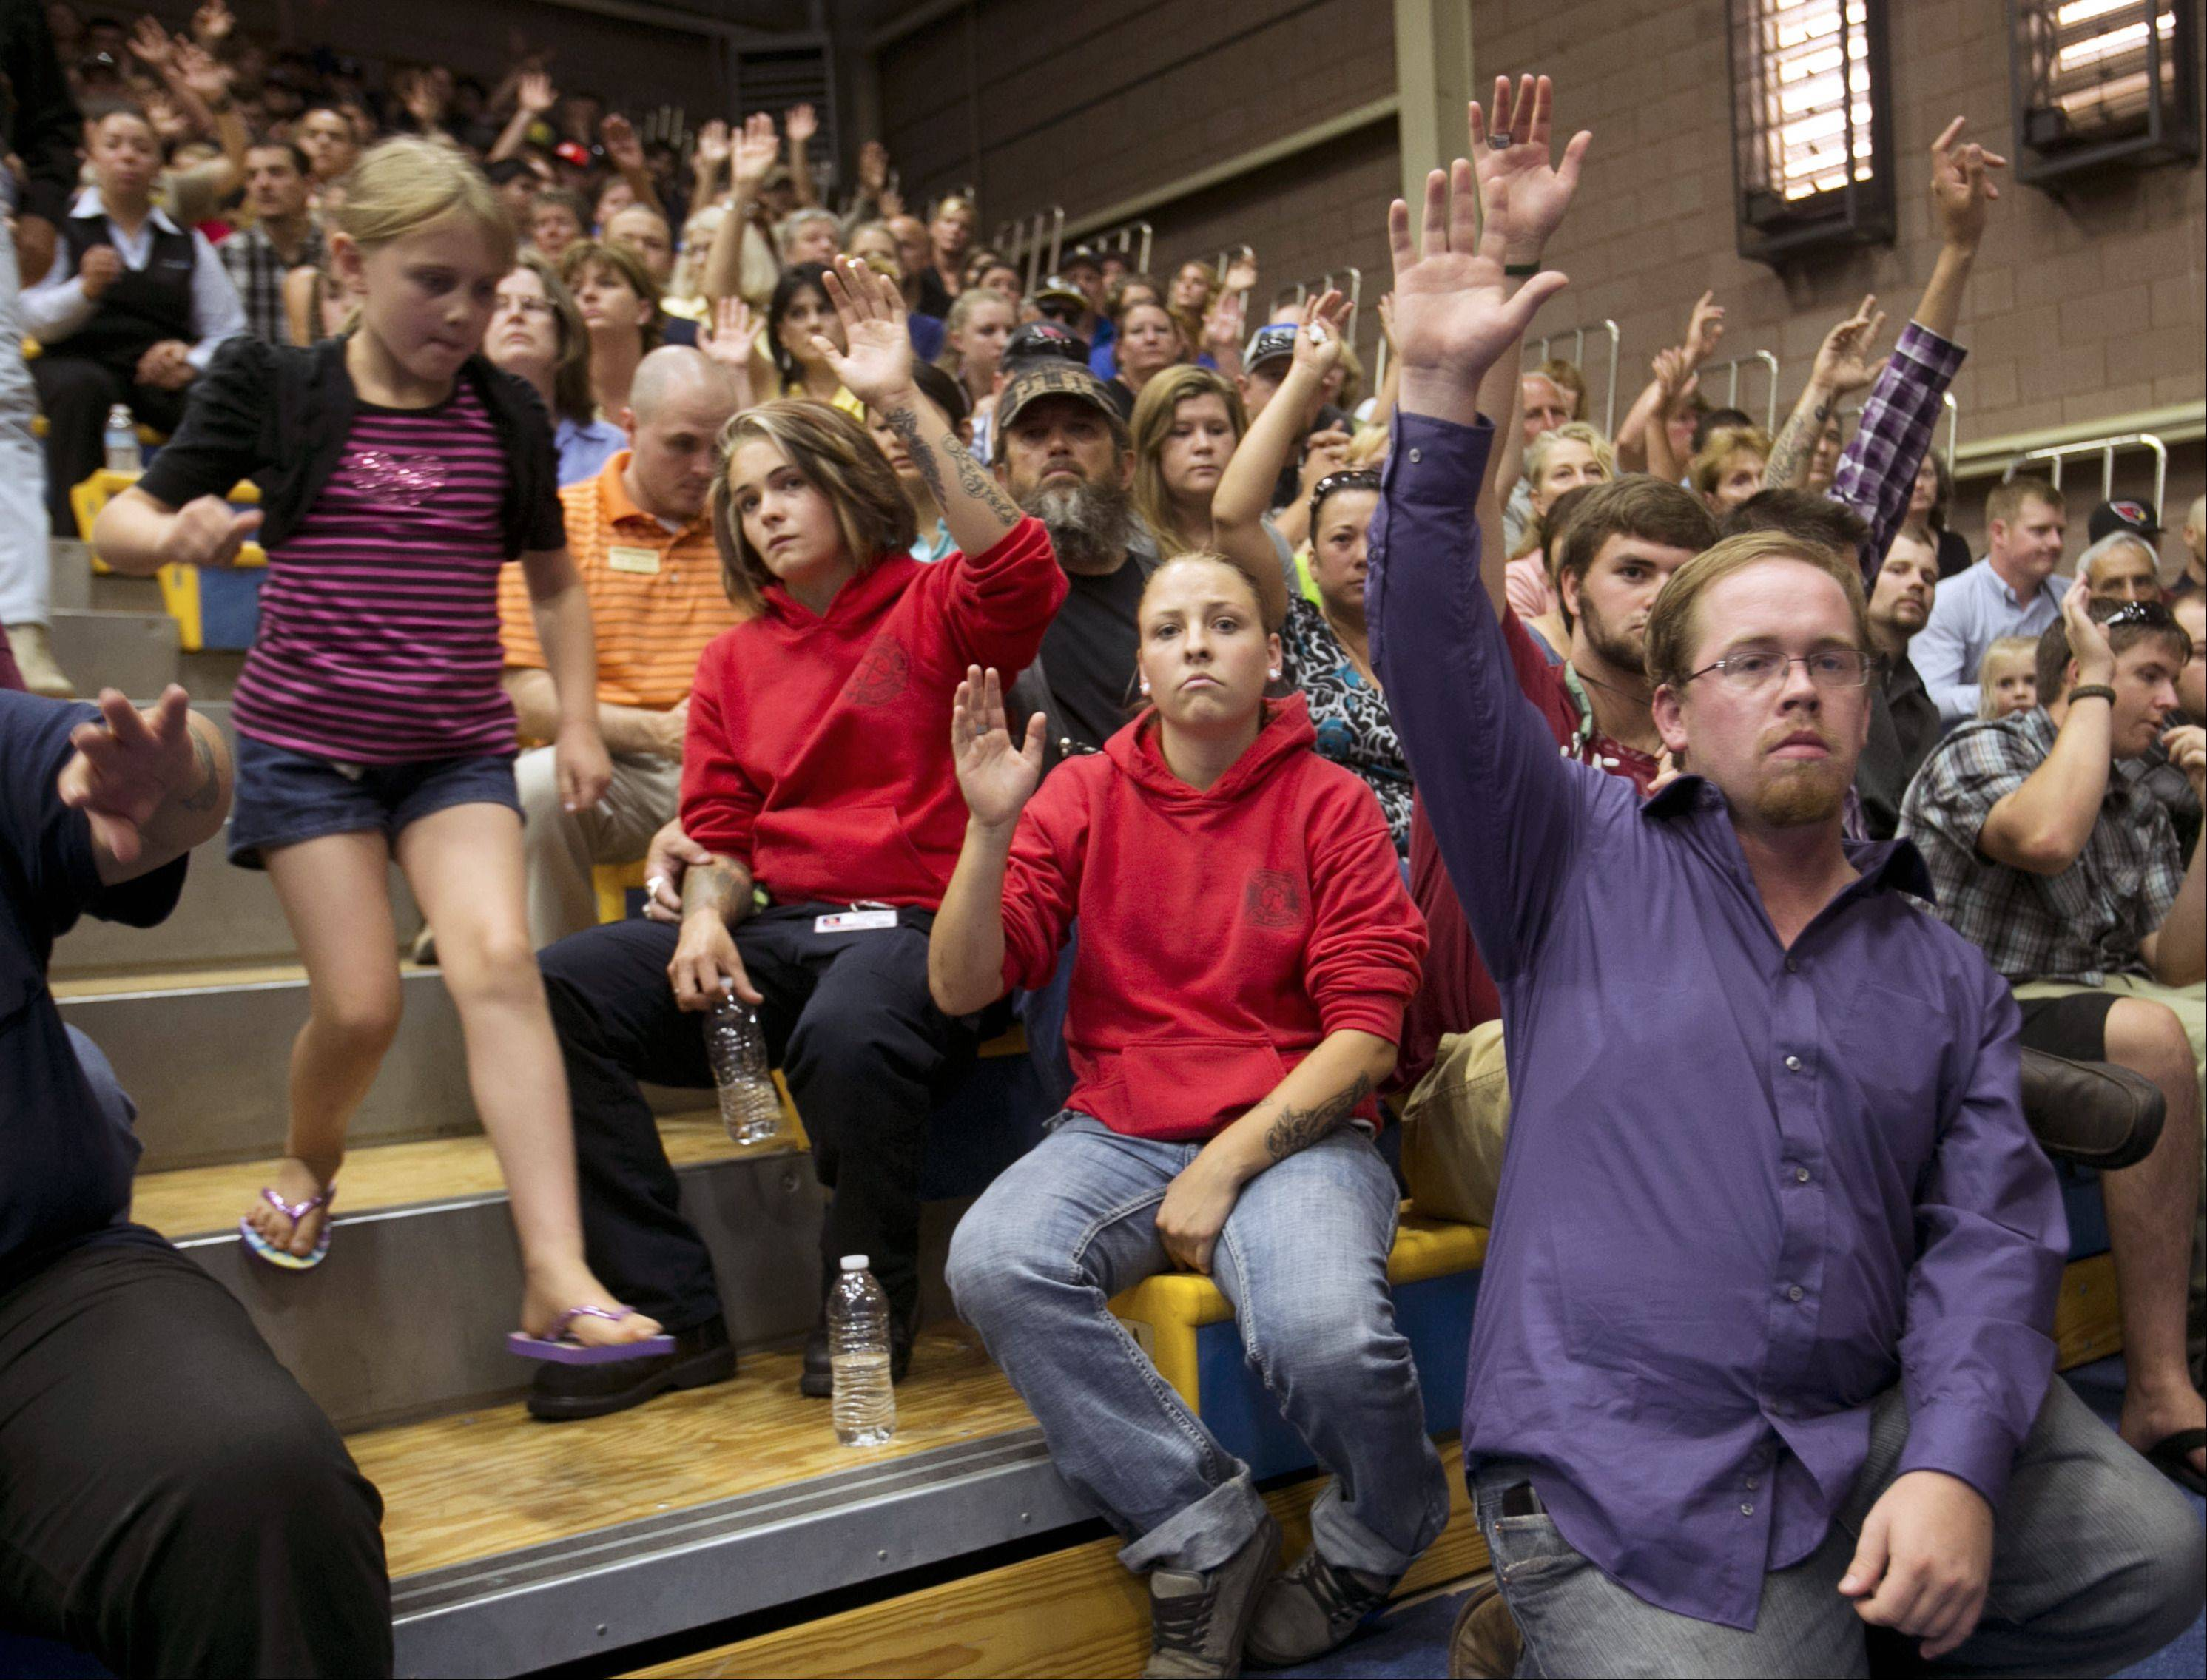 Levi Weinberger, right, raises his hand with others to indicate he knew a firefighter that was killed during a memorial service on Monday, July 1, 2013 in Prescott, Ariz.